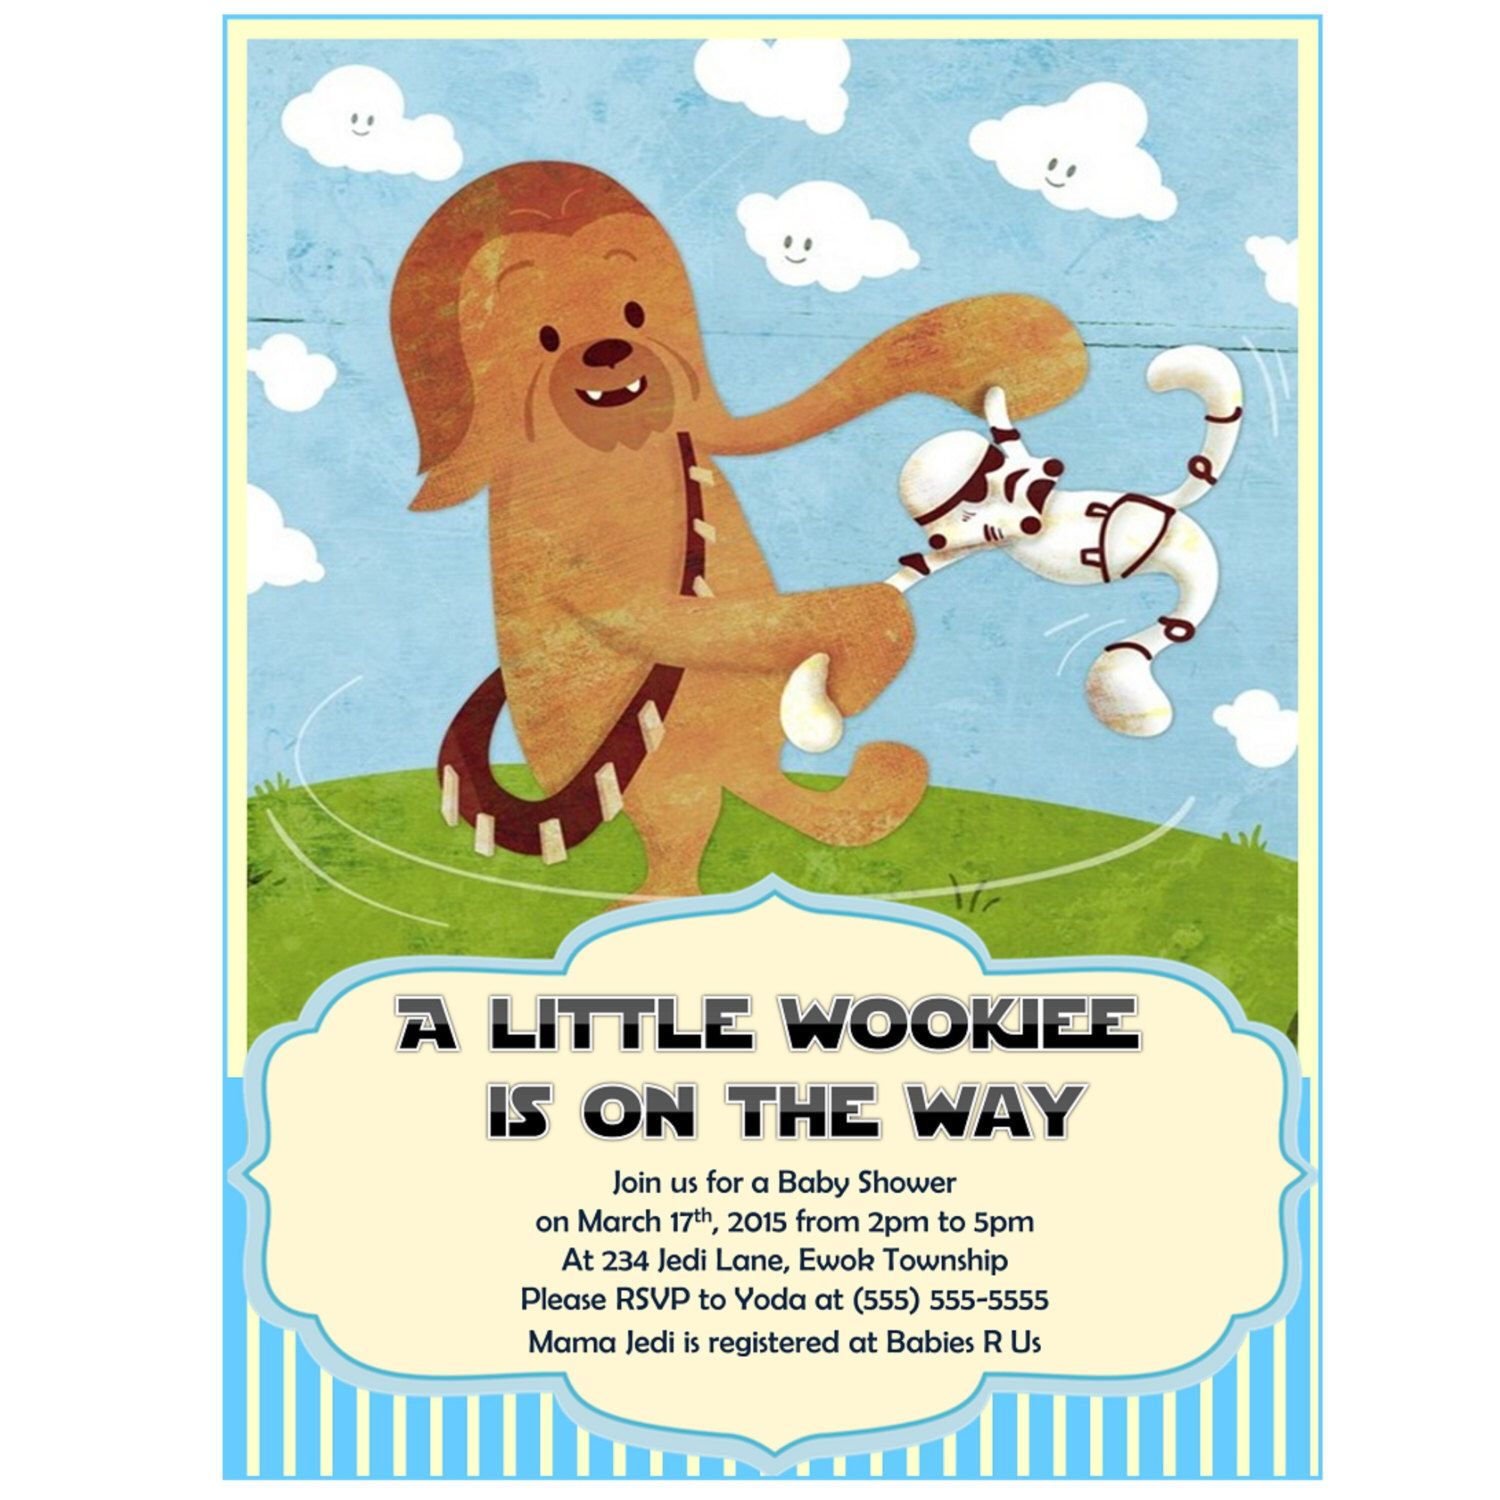 Star Wars Baby Shower Invitation Chewbacca Boy Baby Shower Invitations Wookiee Wookie Invites